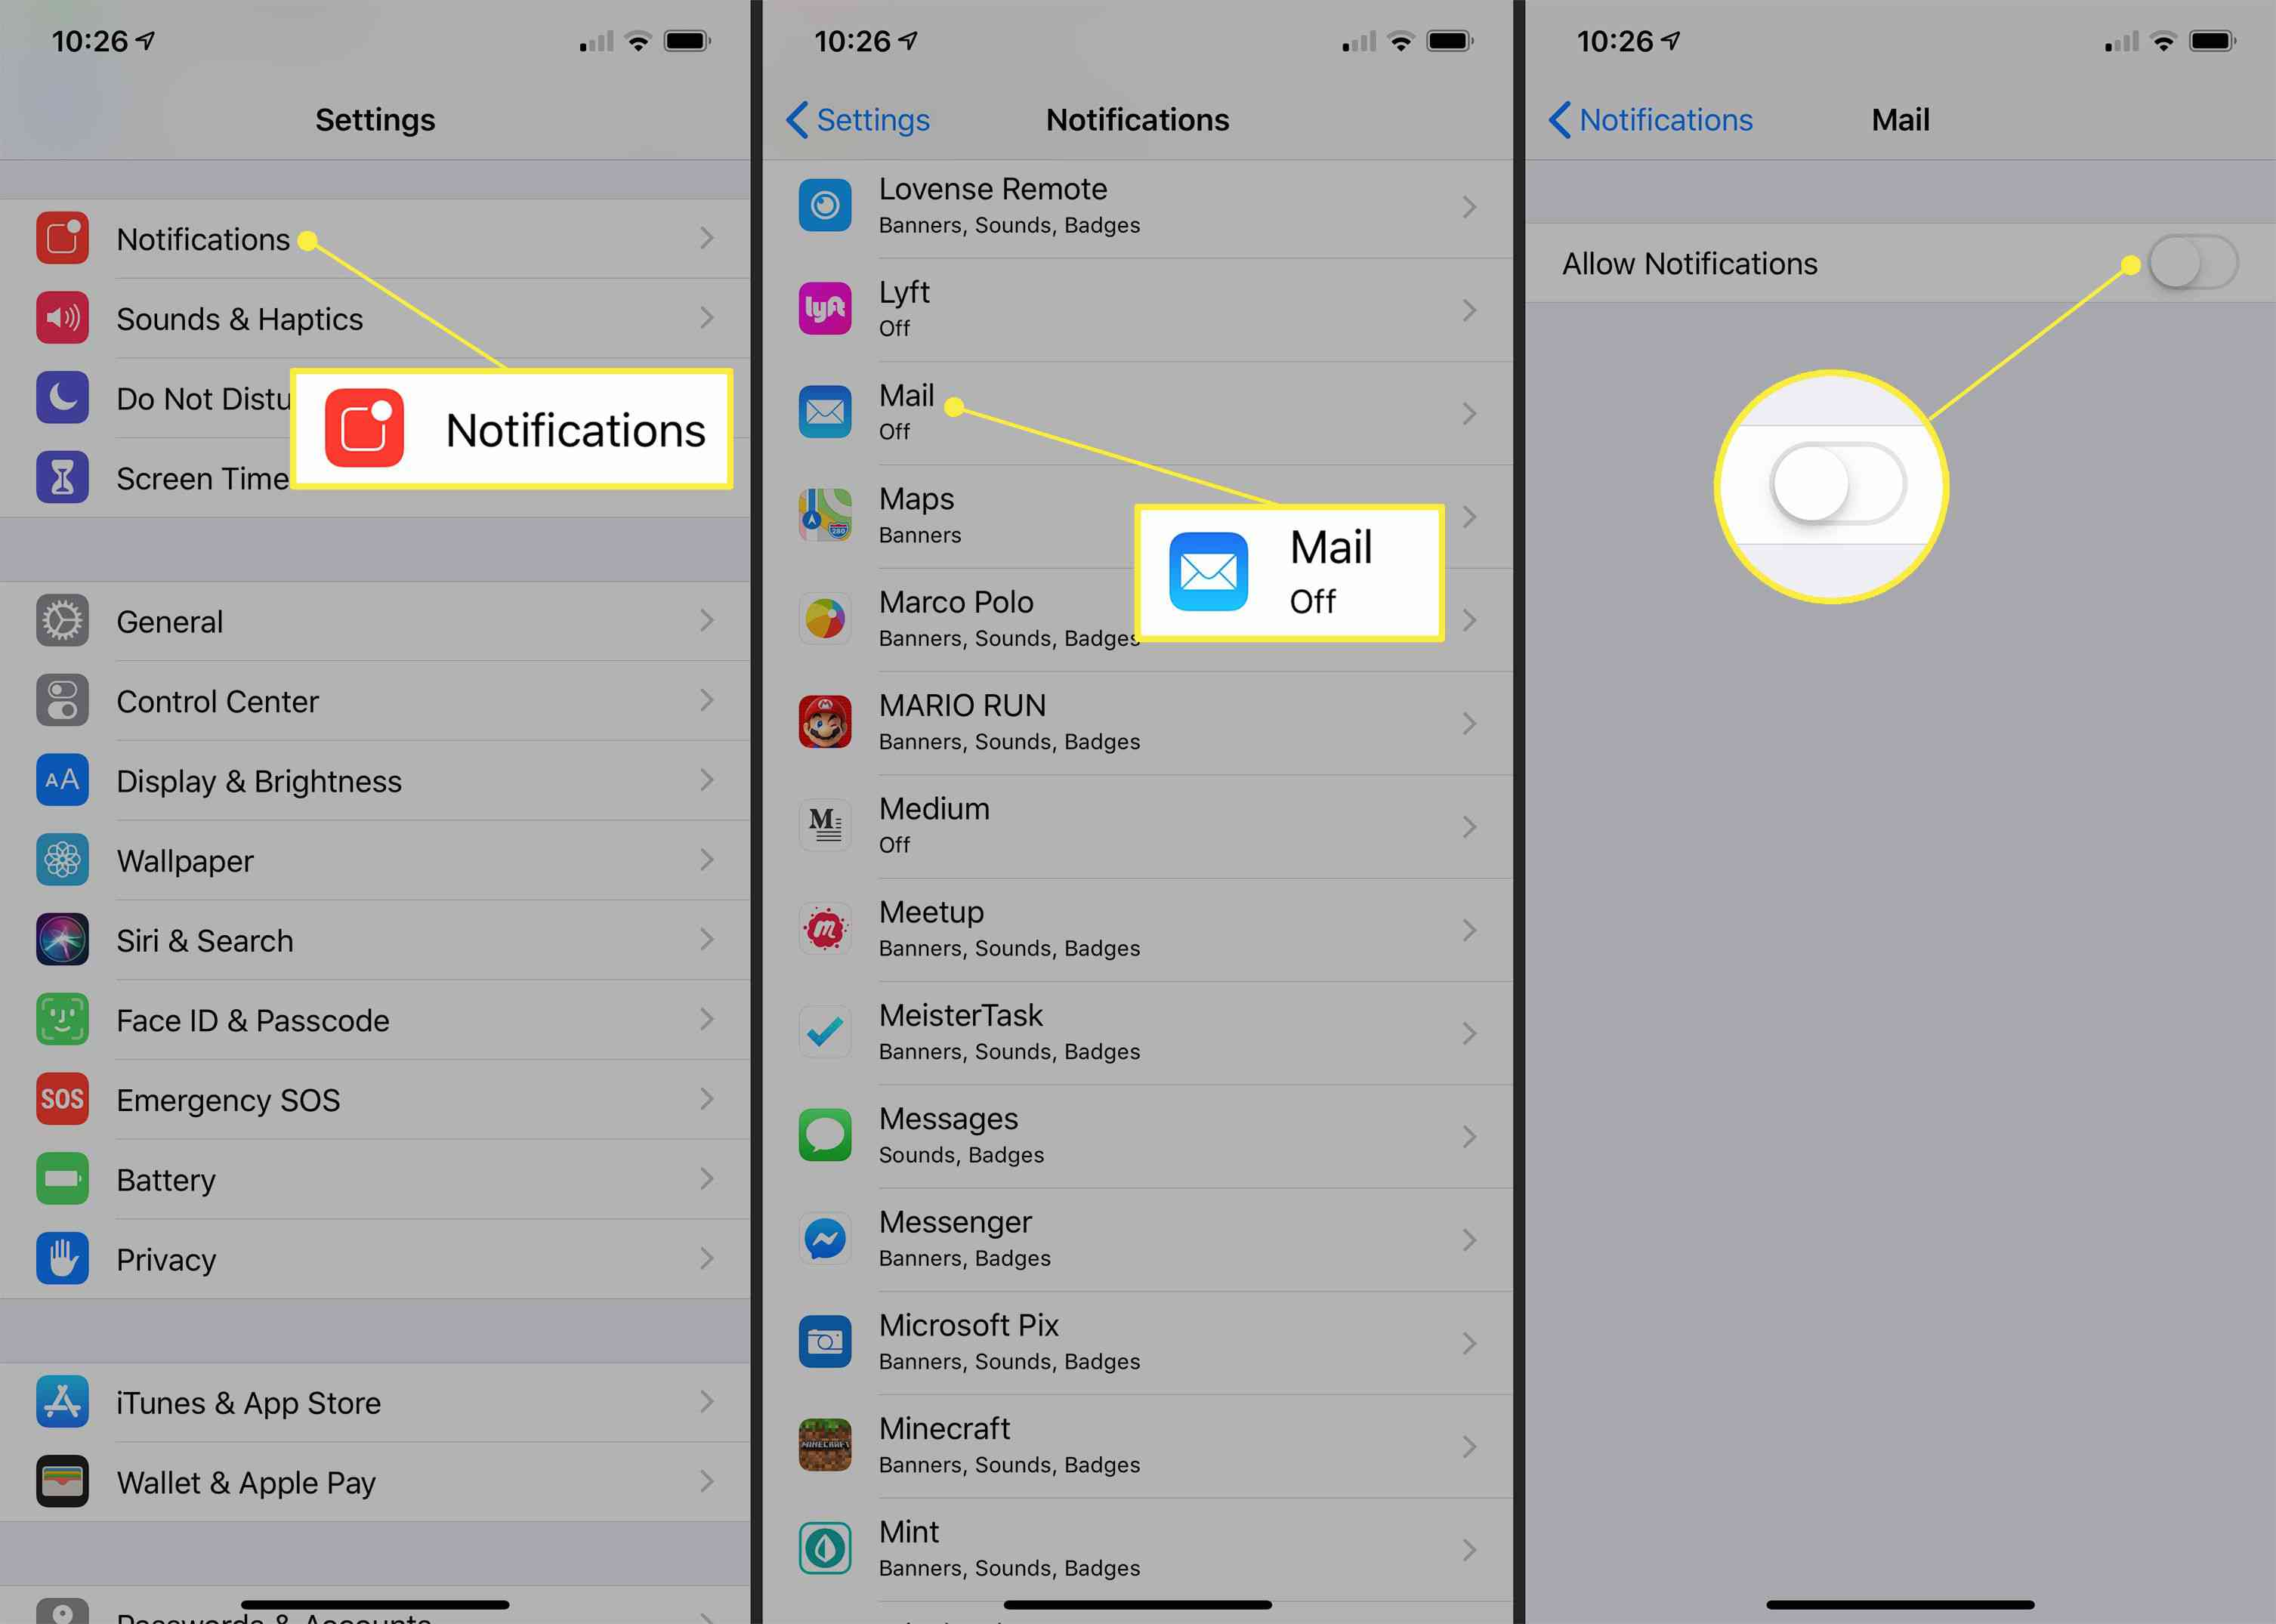 Notifications, Mail, and Allow Notifications toggle to OFF in iOS Settings